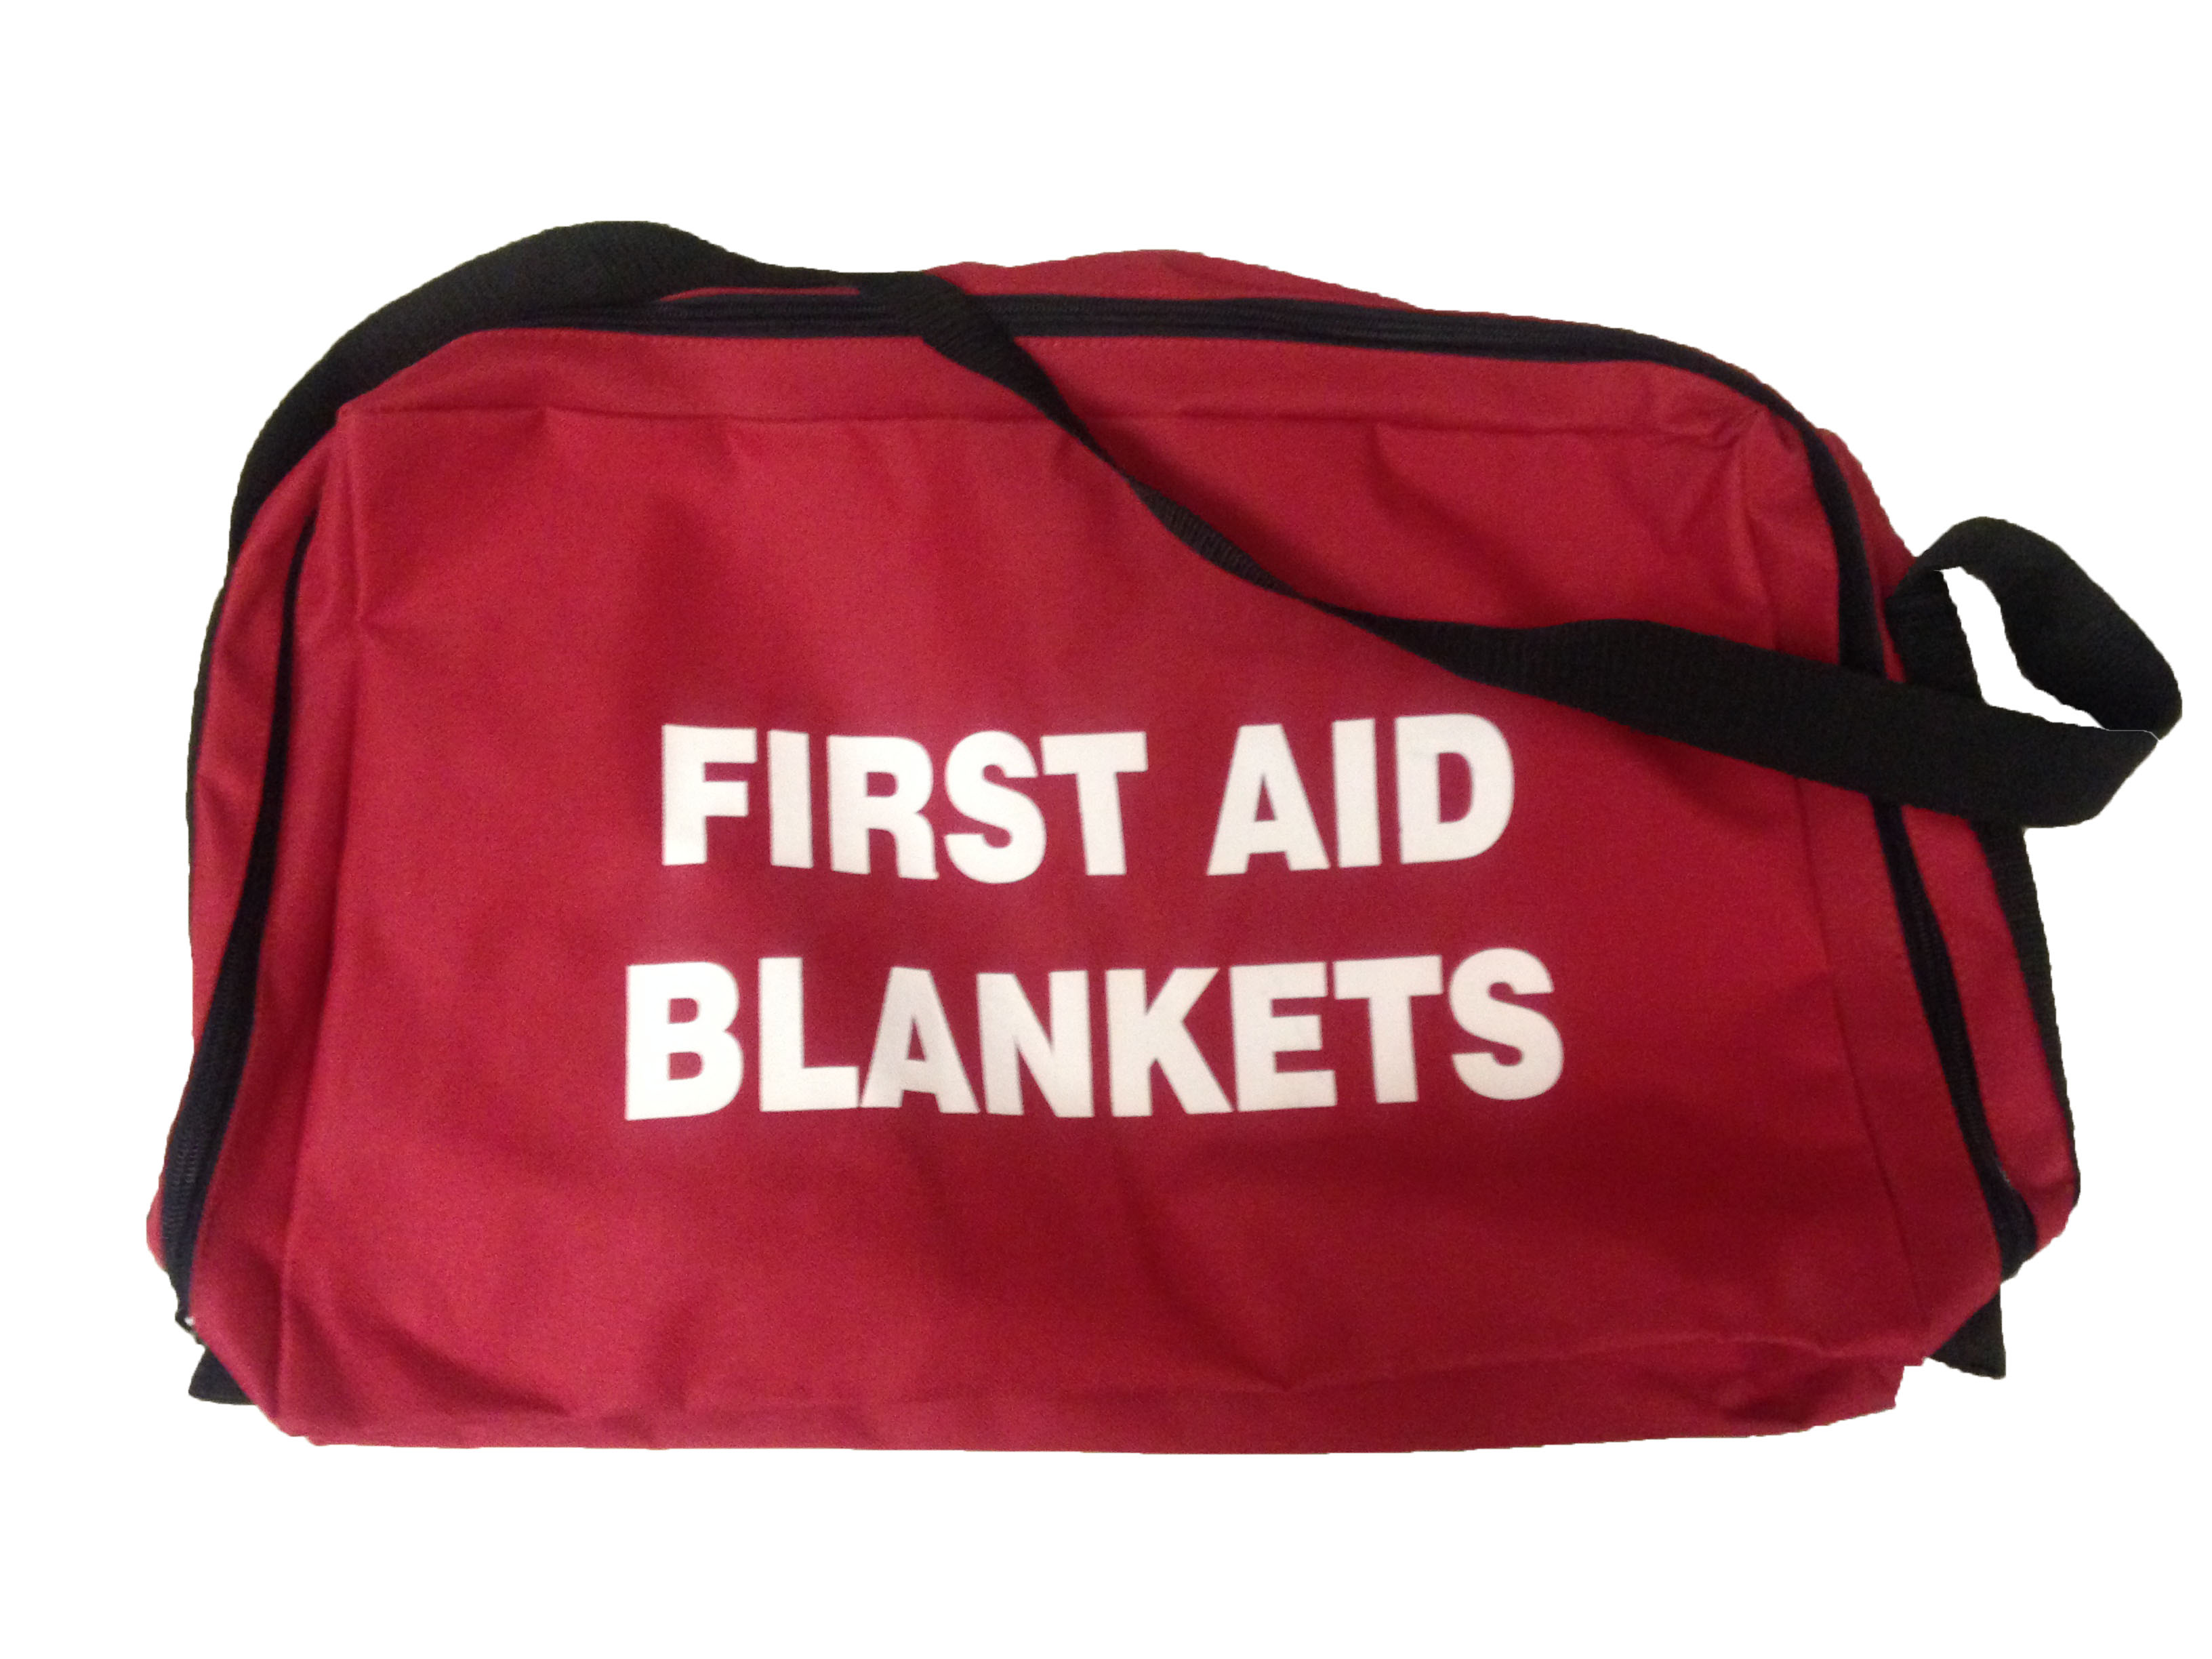 First Aid Blanket Bag image